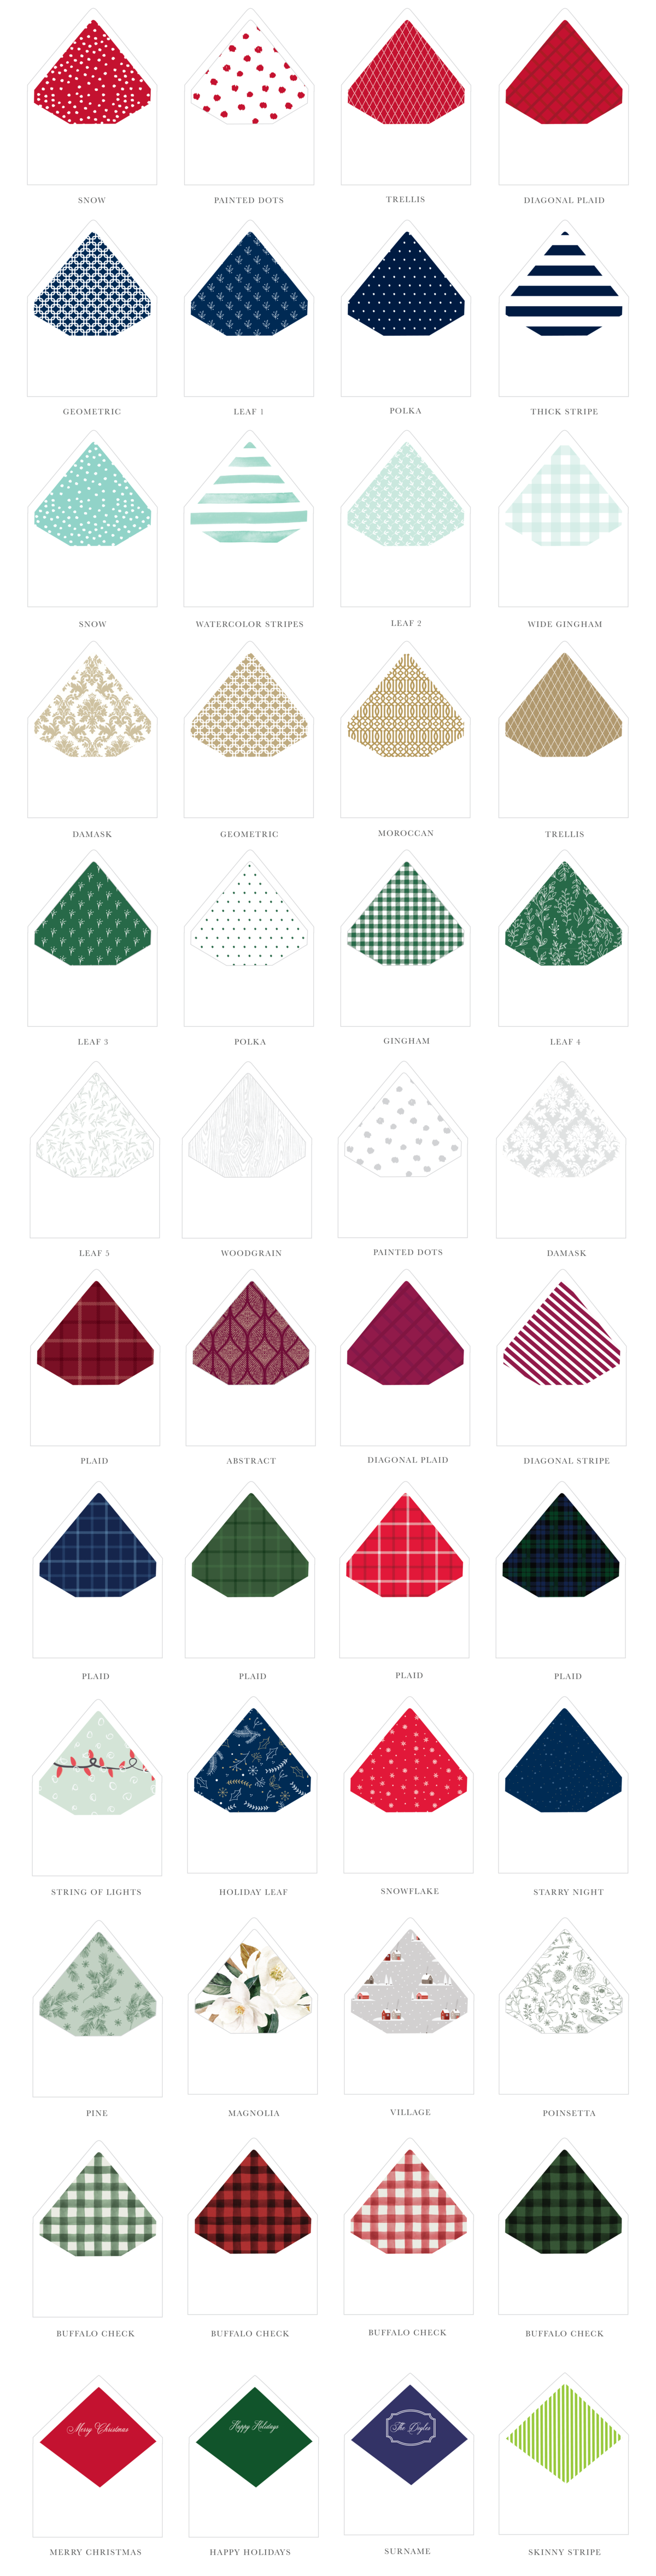 Sweetly Said Holiday Pattern Envelope liners-1200px-11.10.19-01